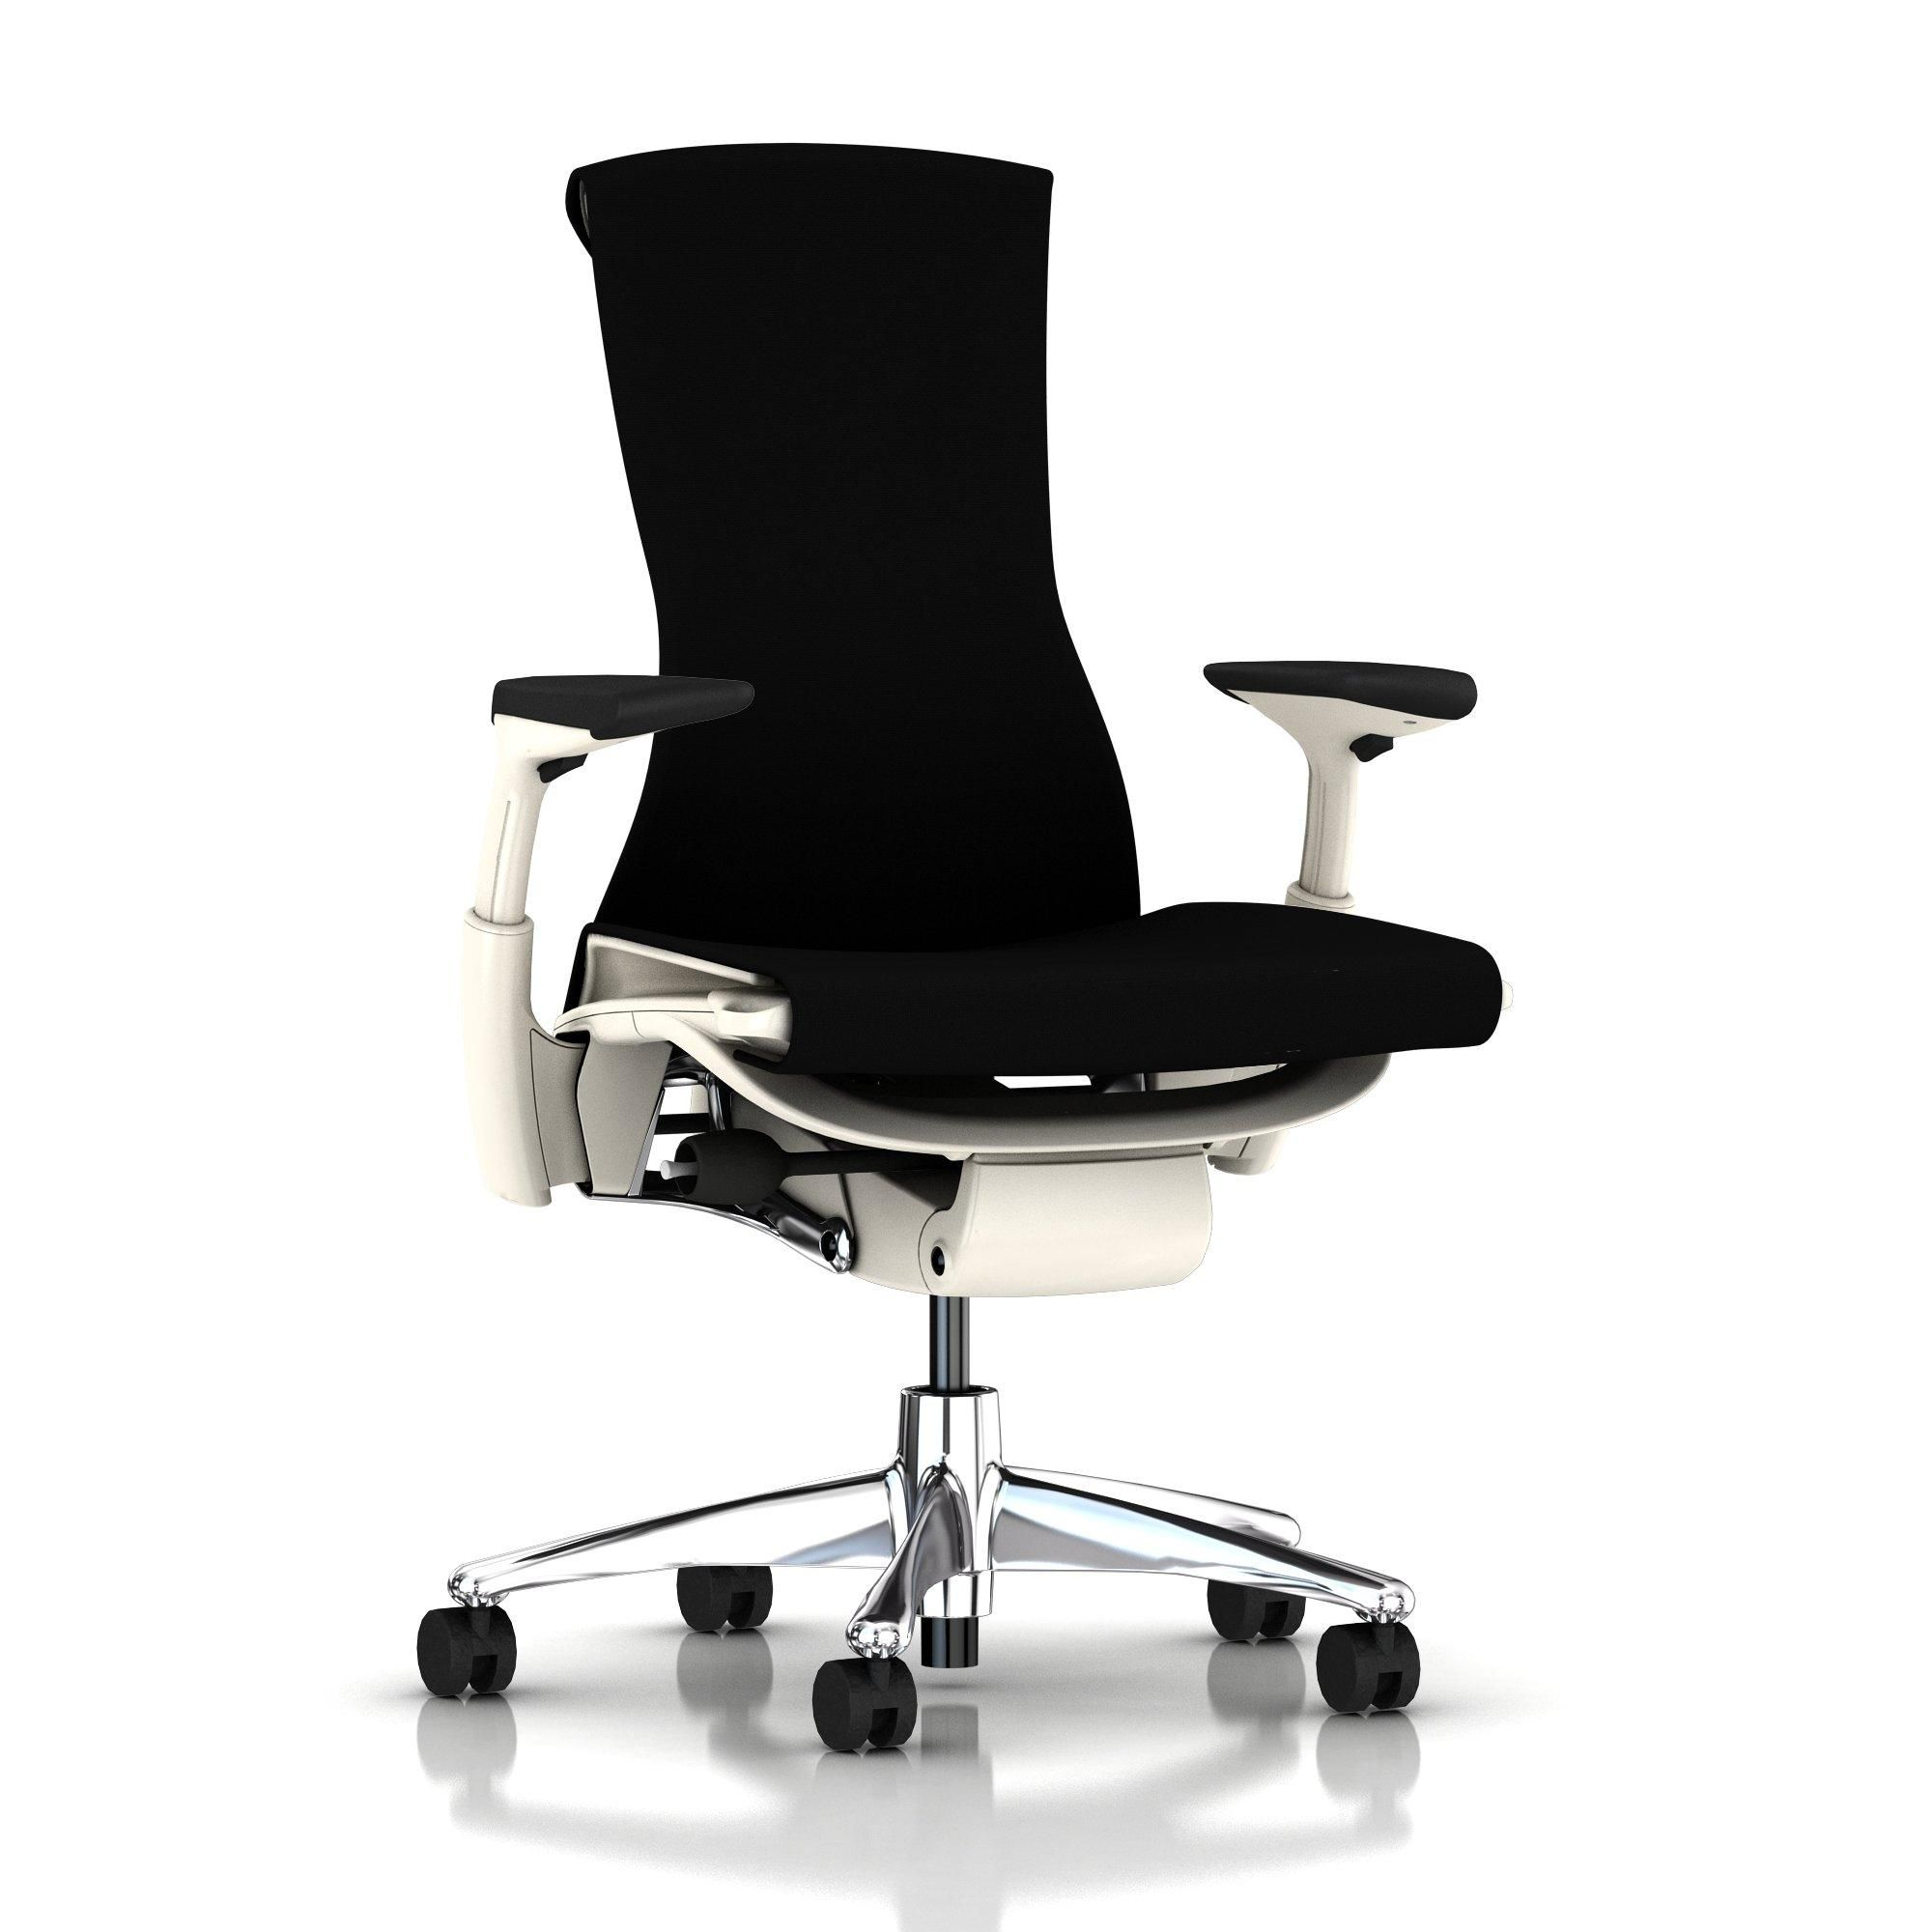 Embody Chair Office Outlet Embody Chair Ergonomic Office Chair Office Chair